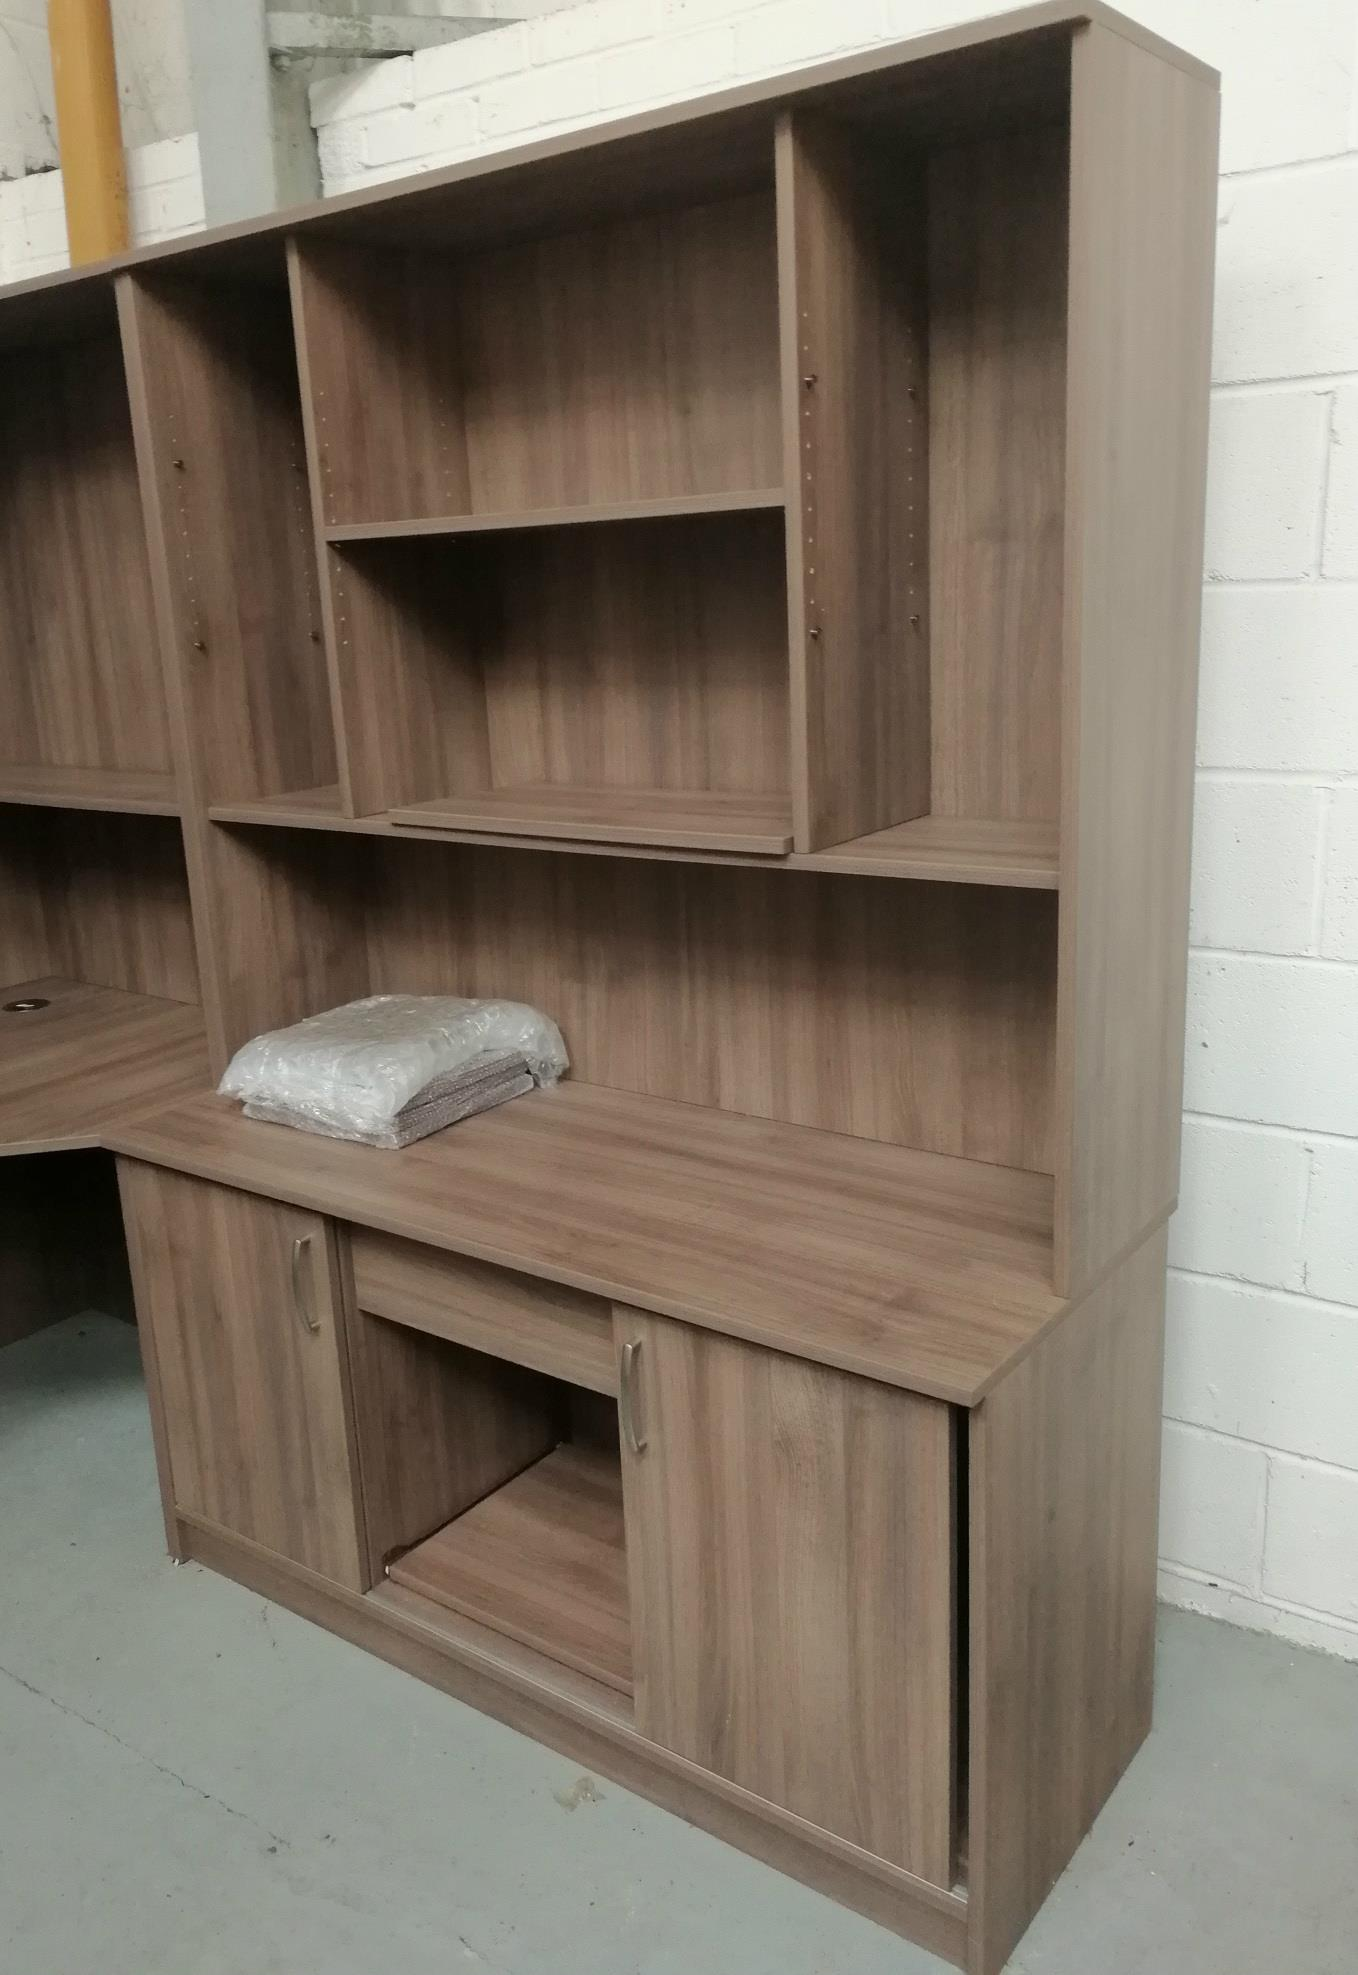 Corndell PURE OFFICE - 2 Drawer Wide Cupboard and Top Unit